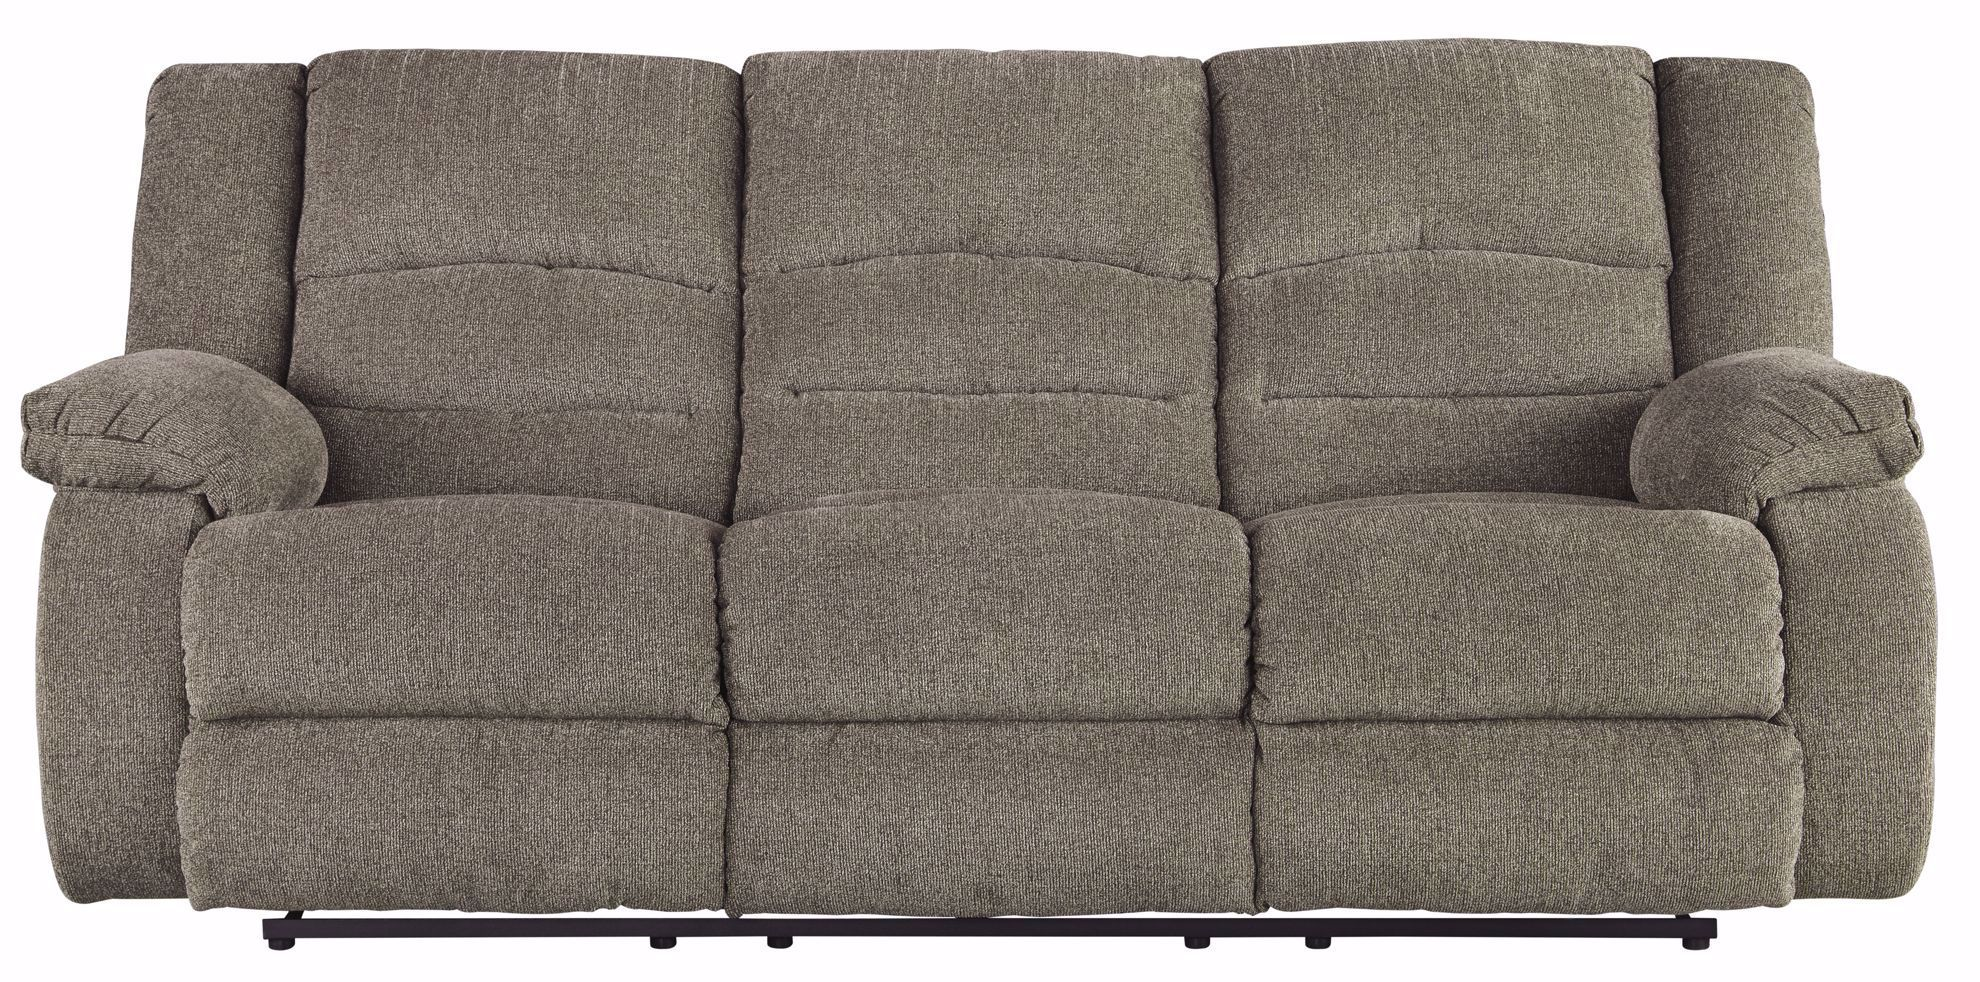 Picture of Nason Anchor Dual Reclining Sofa